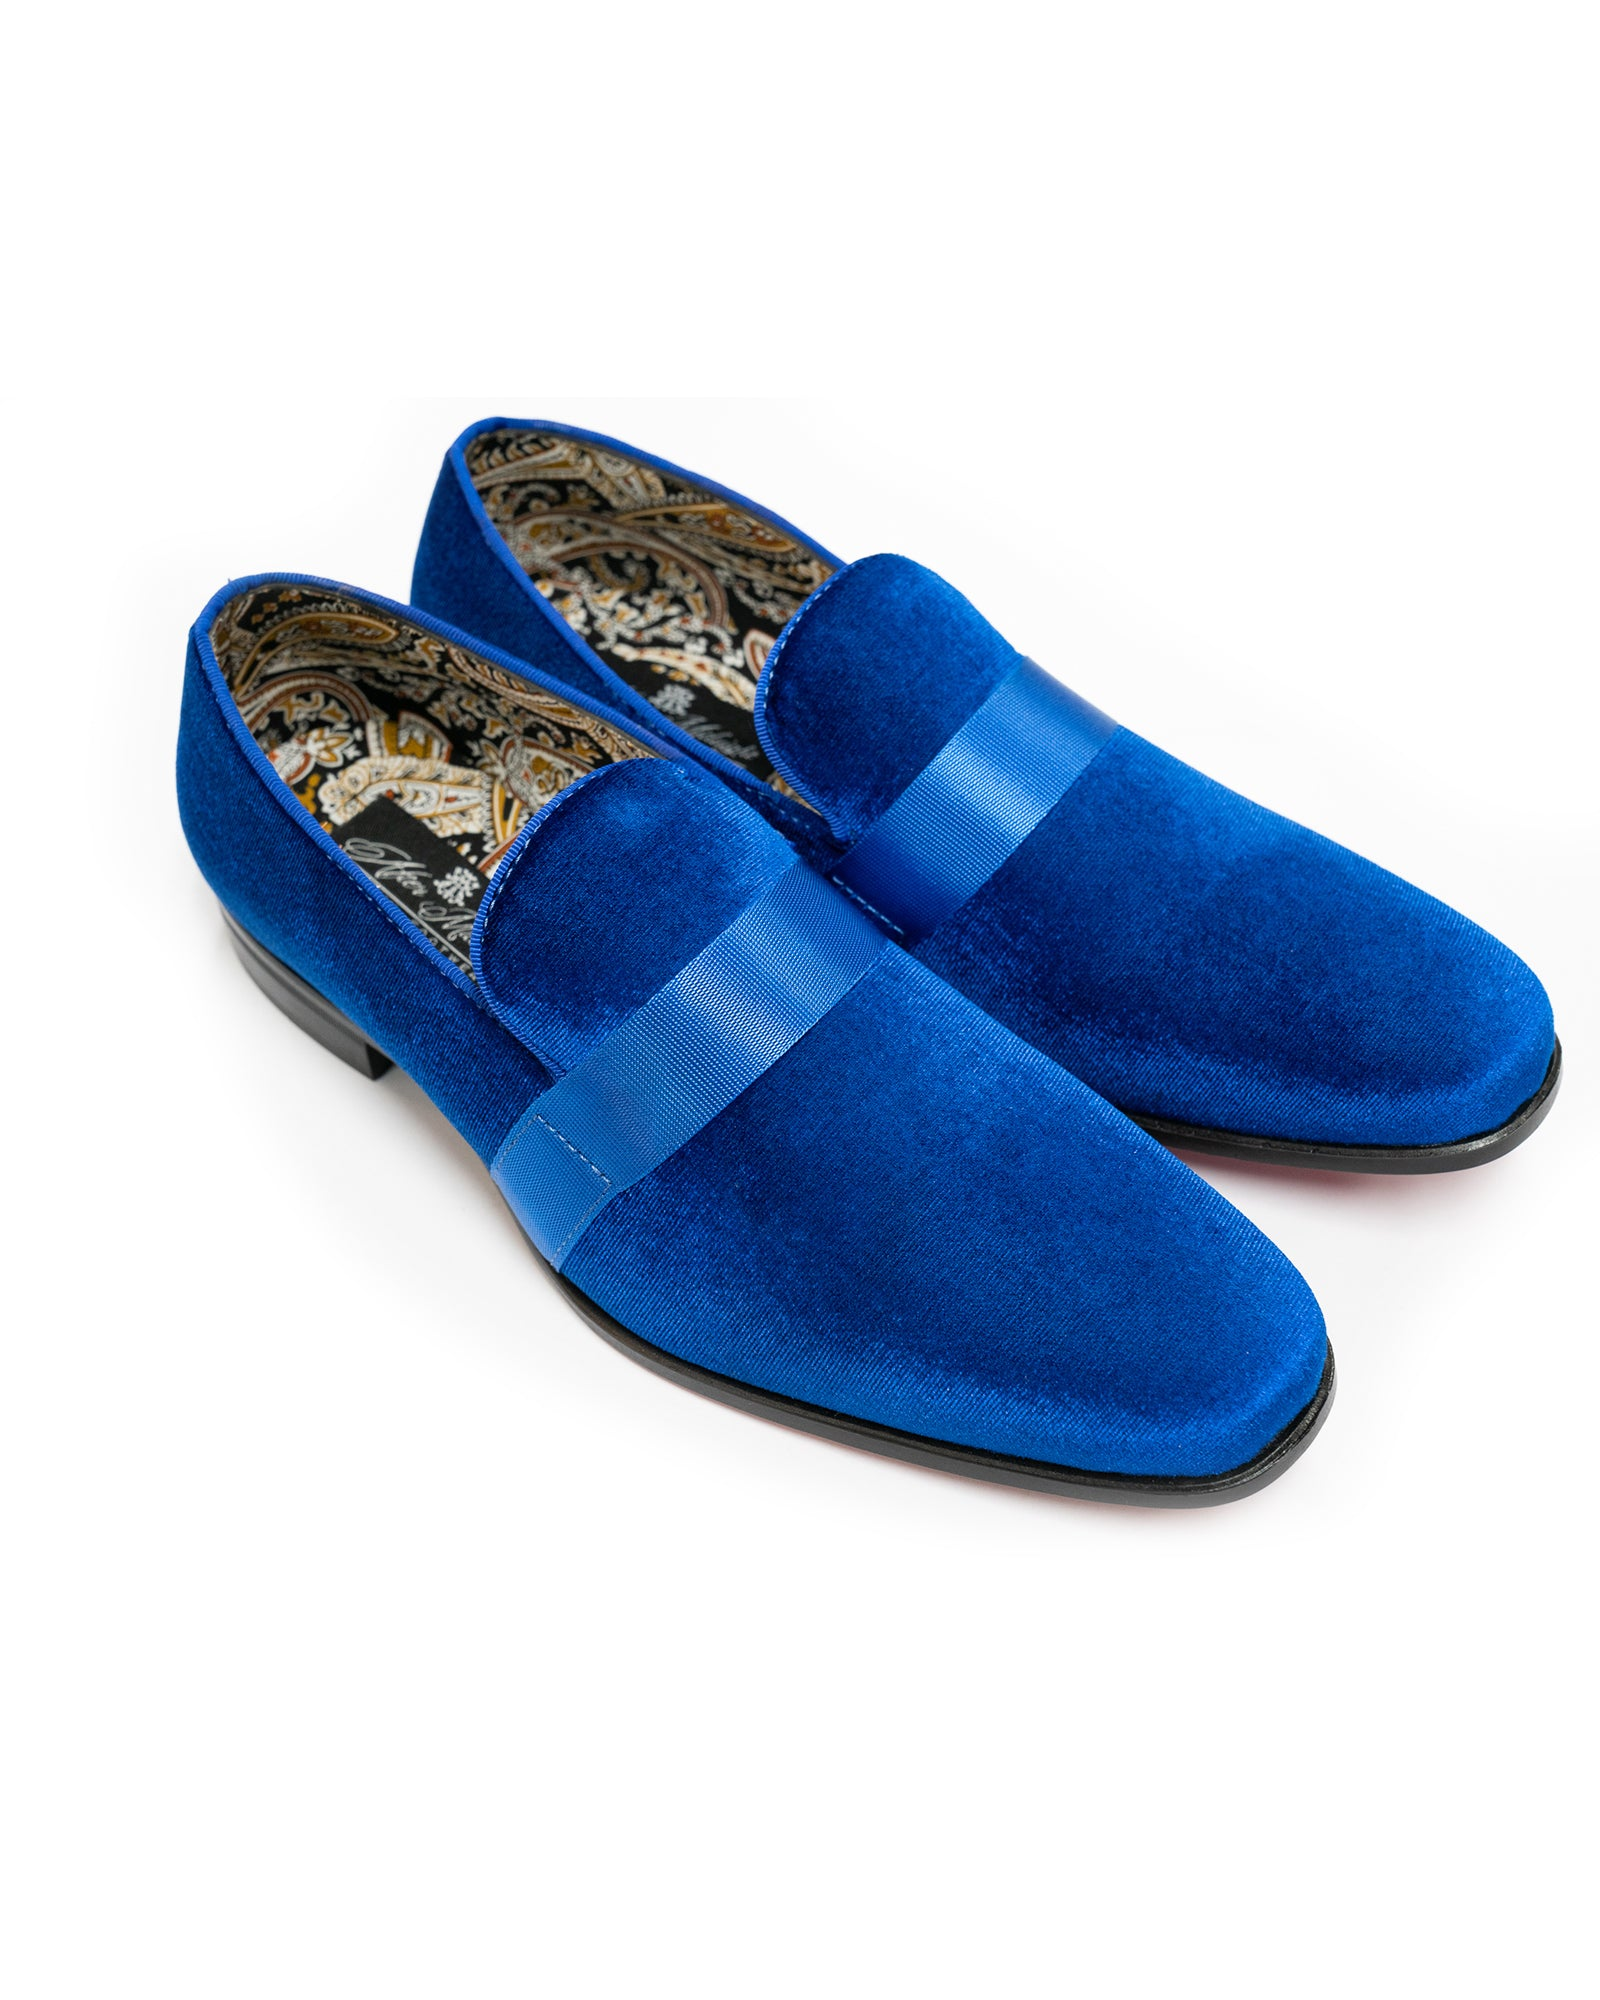 After Midnight Ribbon Band Formal Loafer in Royal Blue - Rainwater's